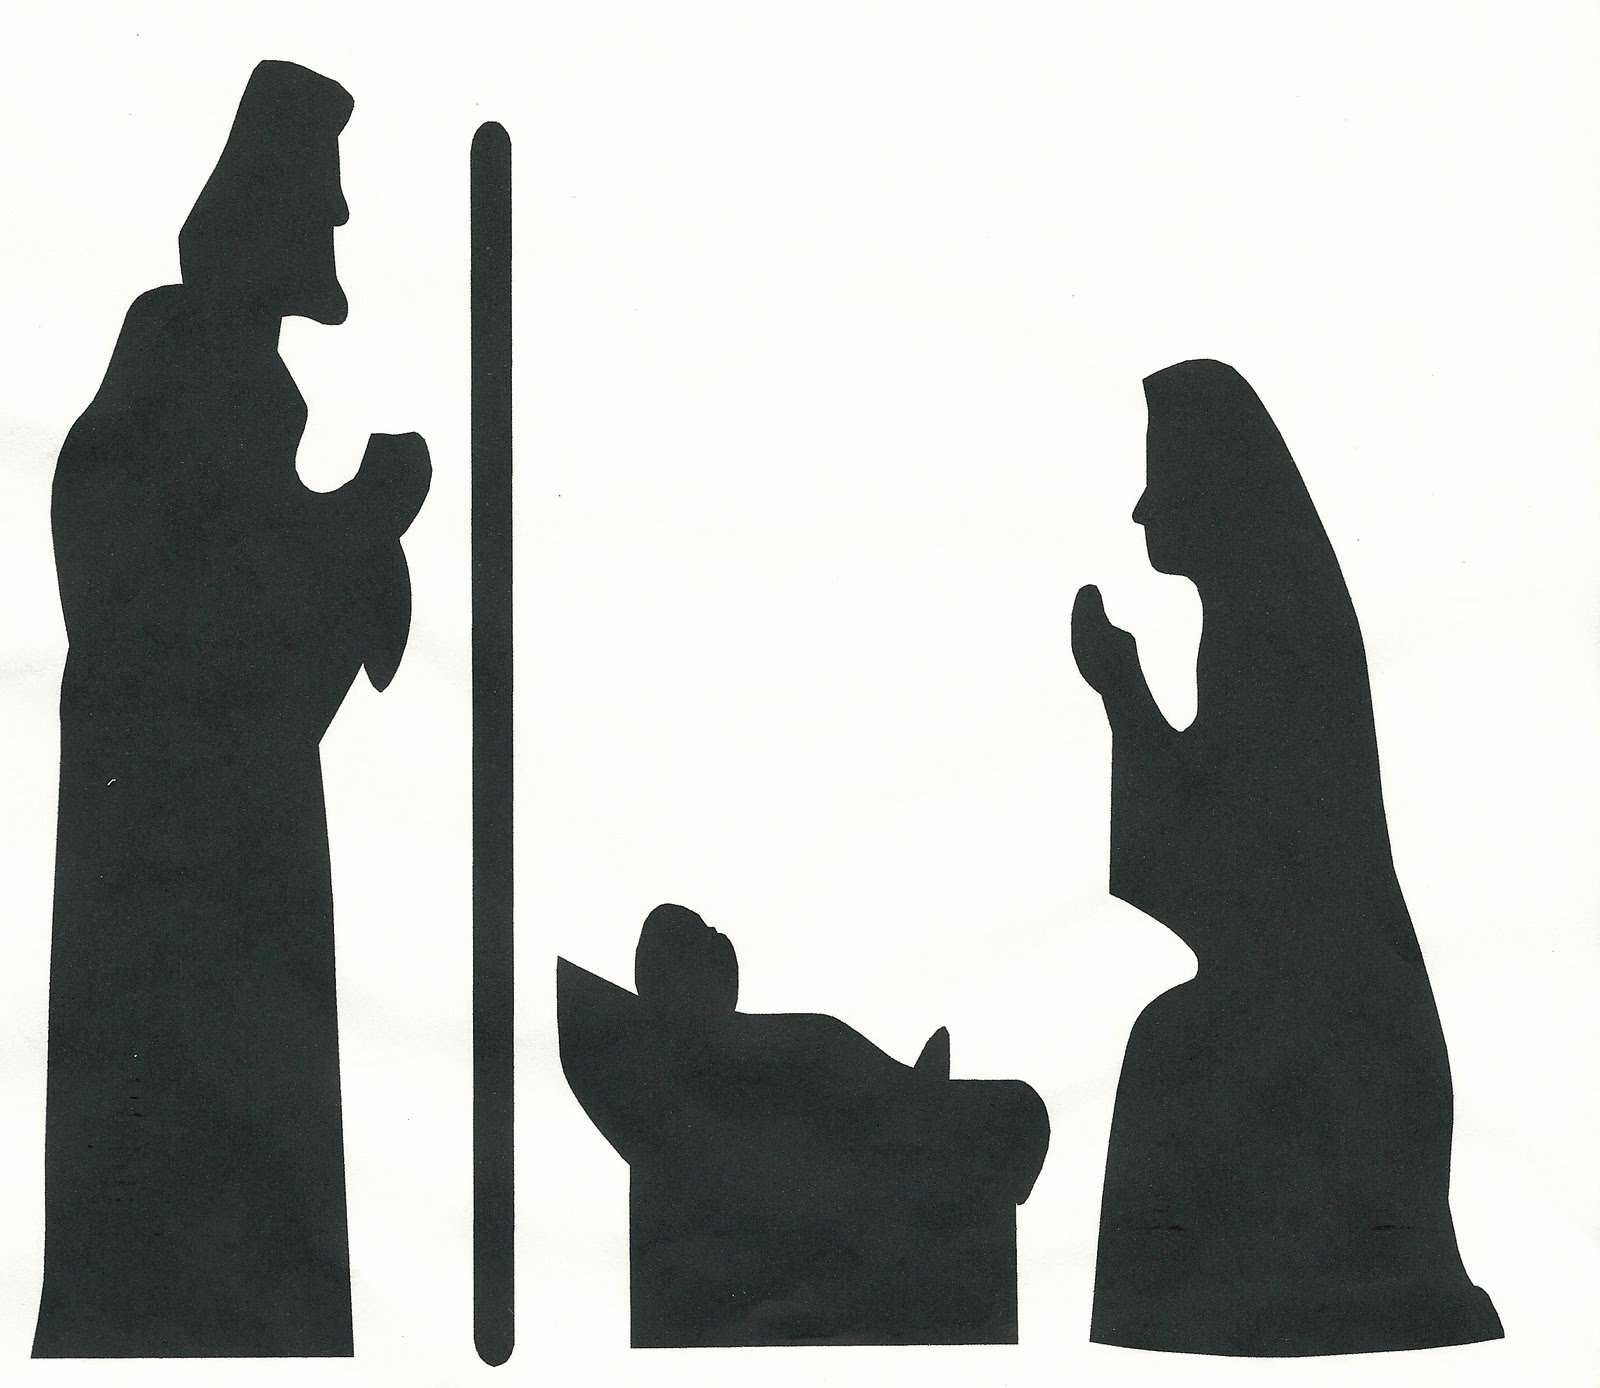 Nativity Silhouette Patterns Awesome Whitehall Ward R S News November 2010